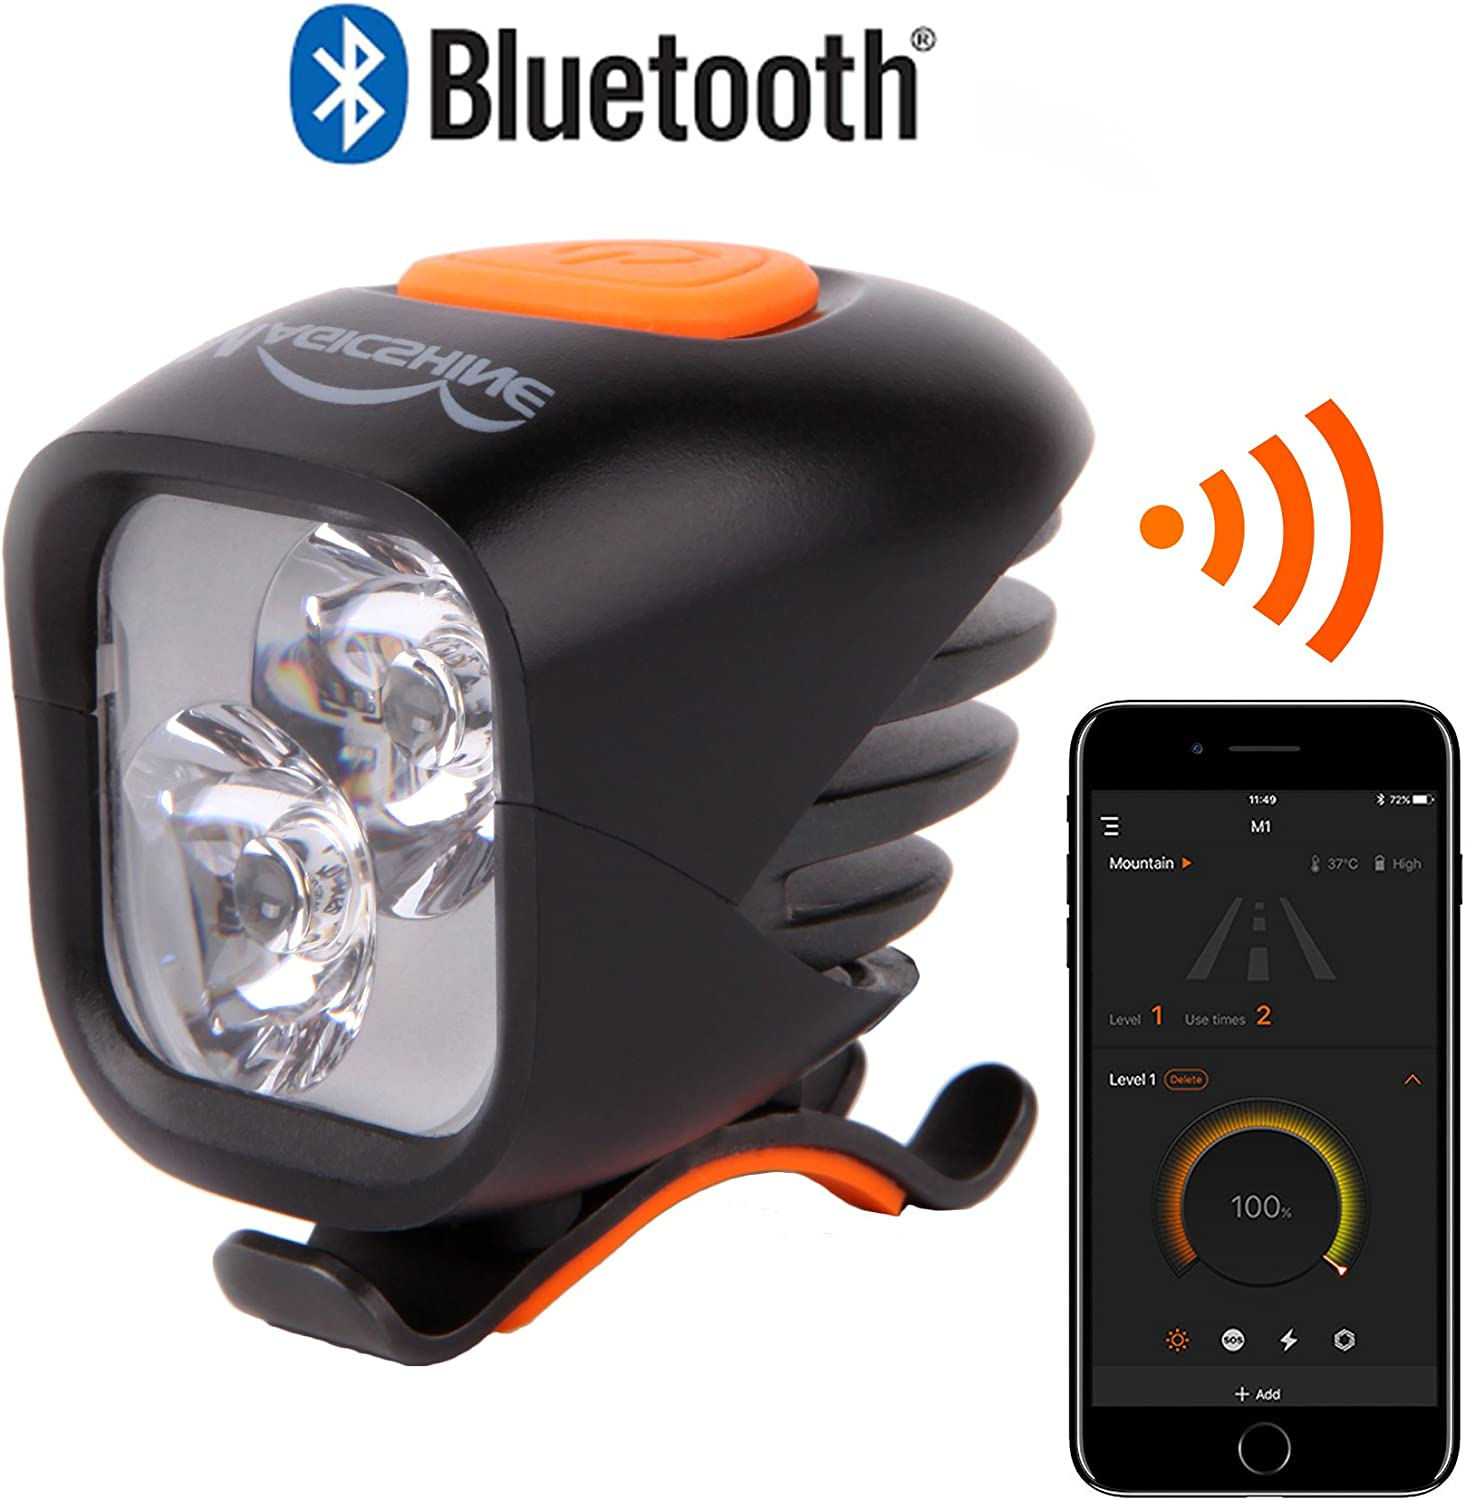 Magicshine MJ 902B Bluetooth Bicycle Headlight, 2xCREE LED 1600 lumens max Actual Output, USB Rechargeable 5.2 Ah high Capacity Battery Pack, Customizable for Mountain Biking Road Cycling.